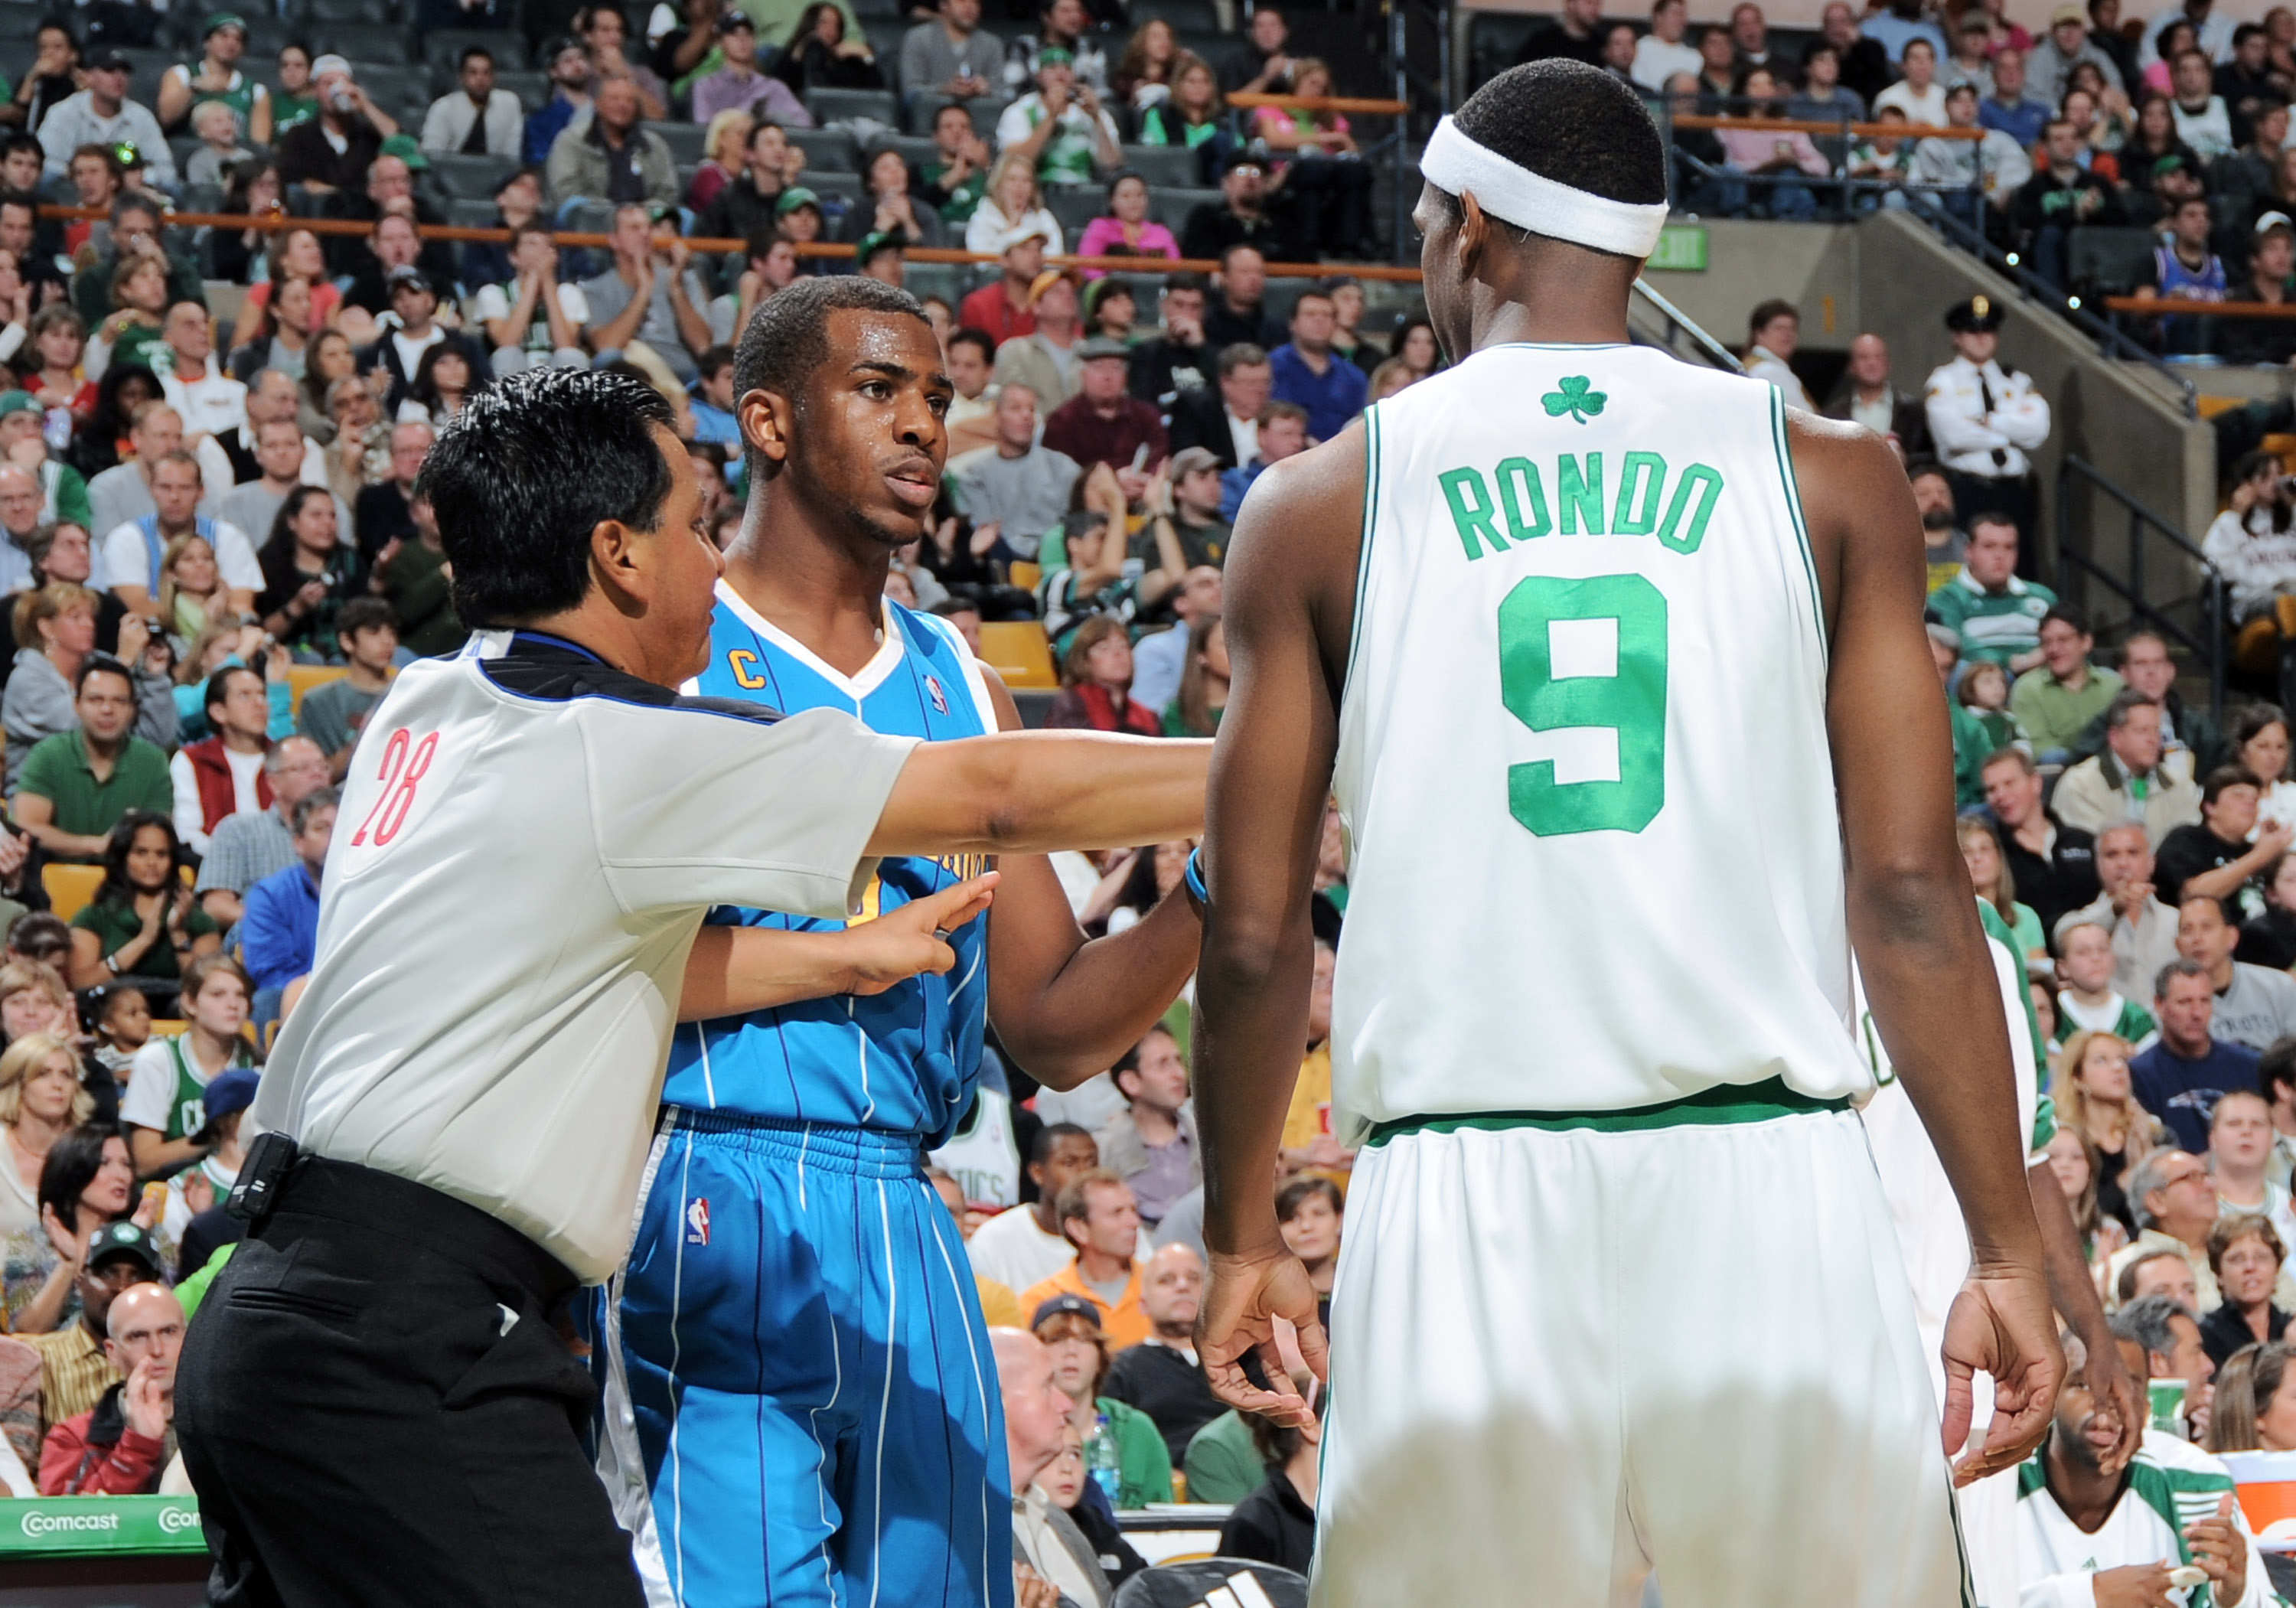 The Chris Paul vs. Rajon Rondo beef has been stewing for 10 years